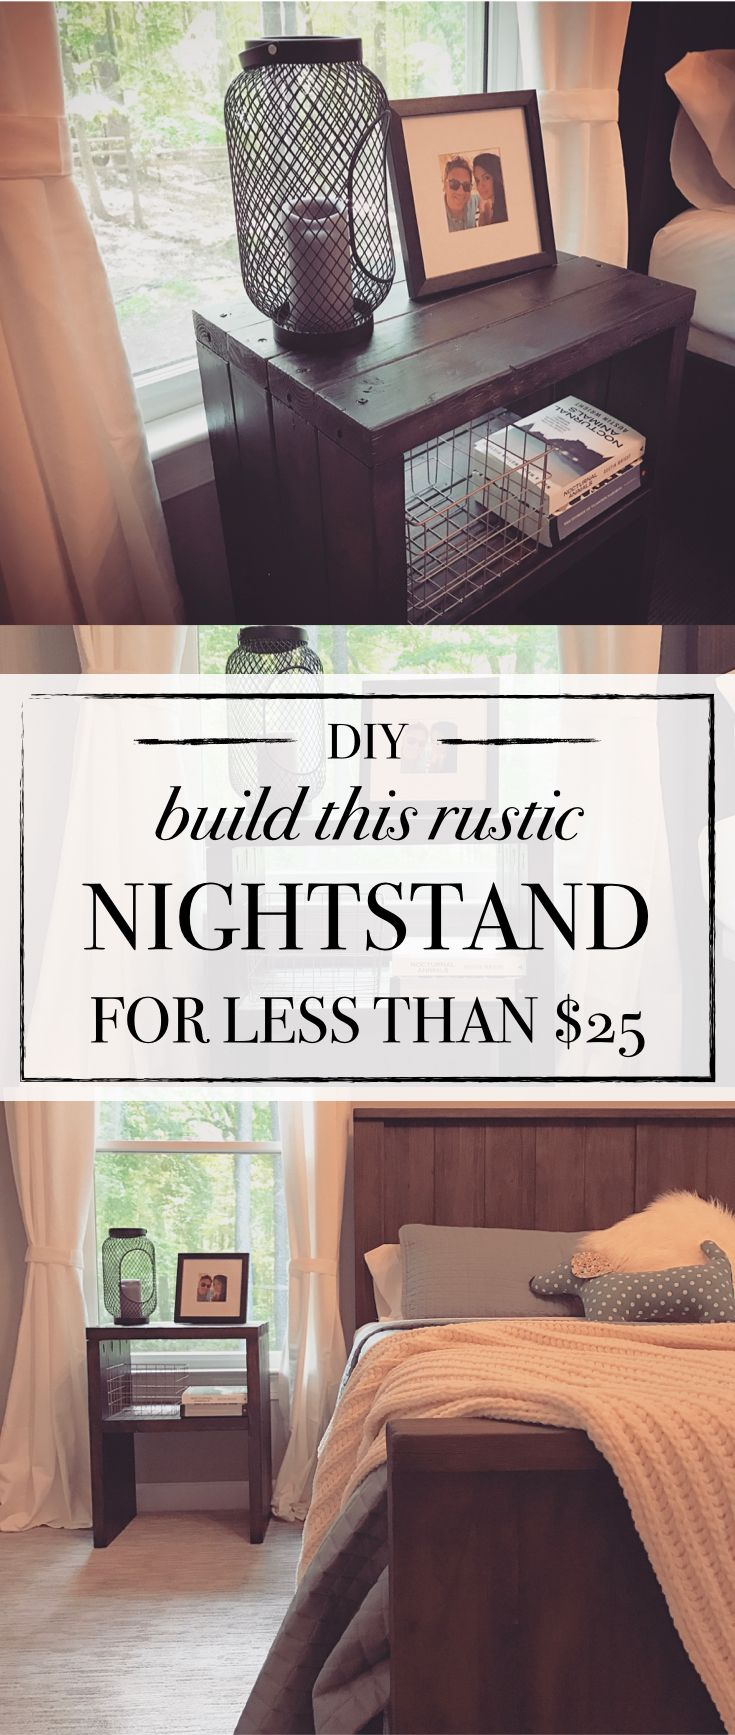 DIY nightstand! how to build a rustic farmhouse style nightstand using 2x4s for less than $25! cheap and easy!